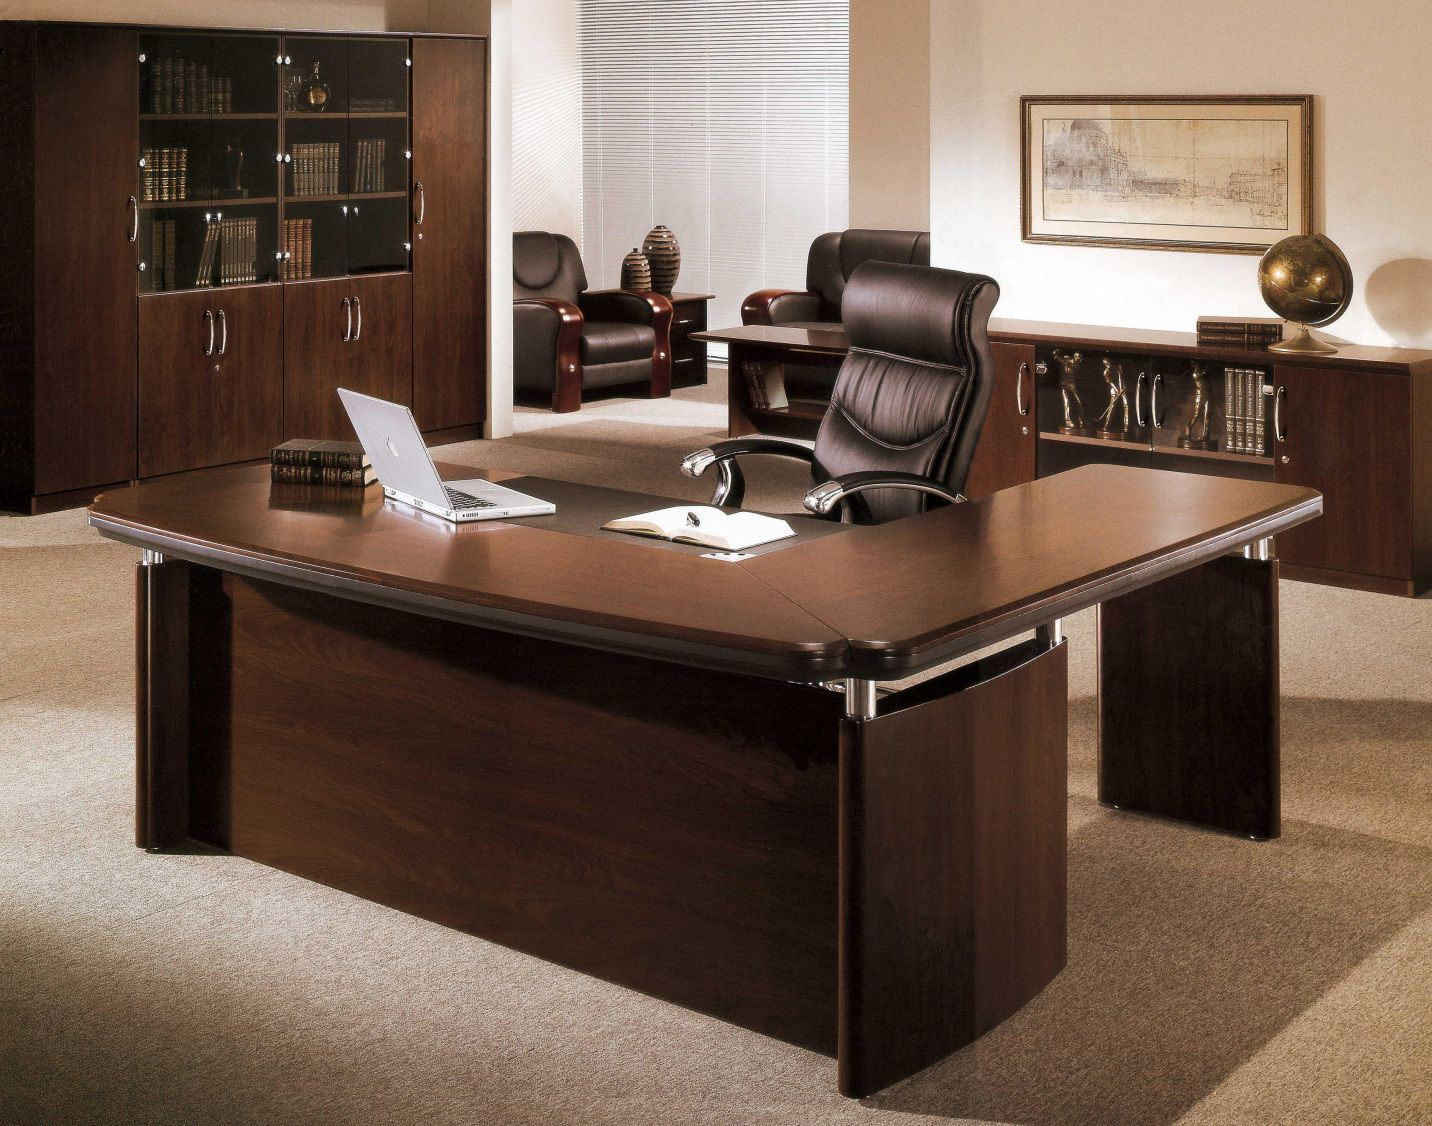 small executive office desk contemporary home office furniture rh pinterest com small executive office desk small executive desk for sale